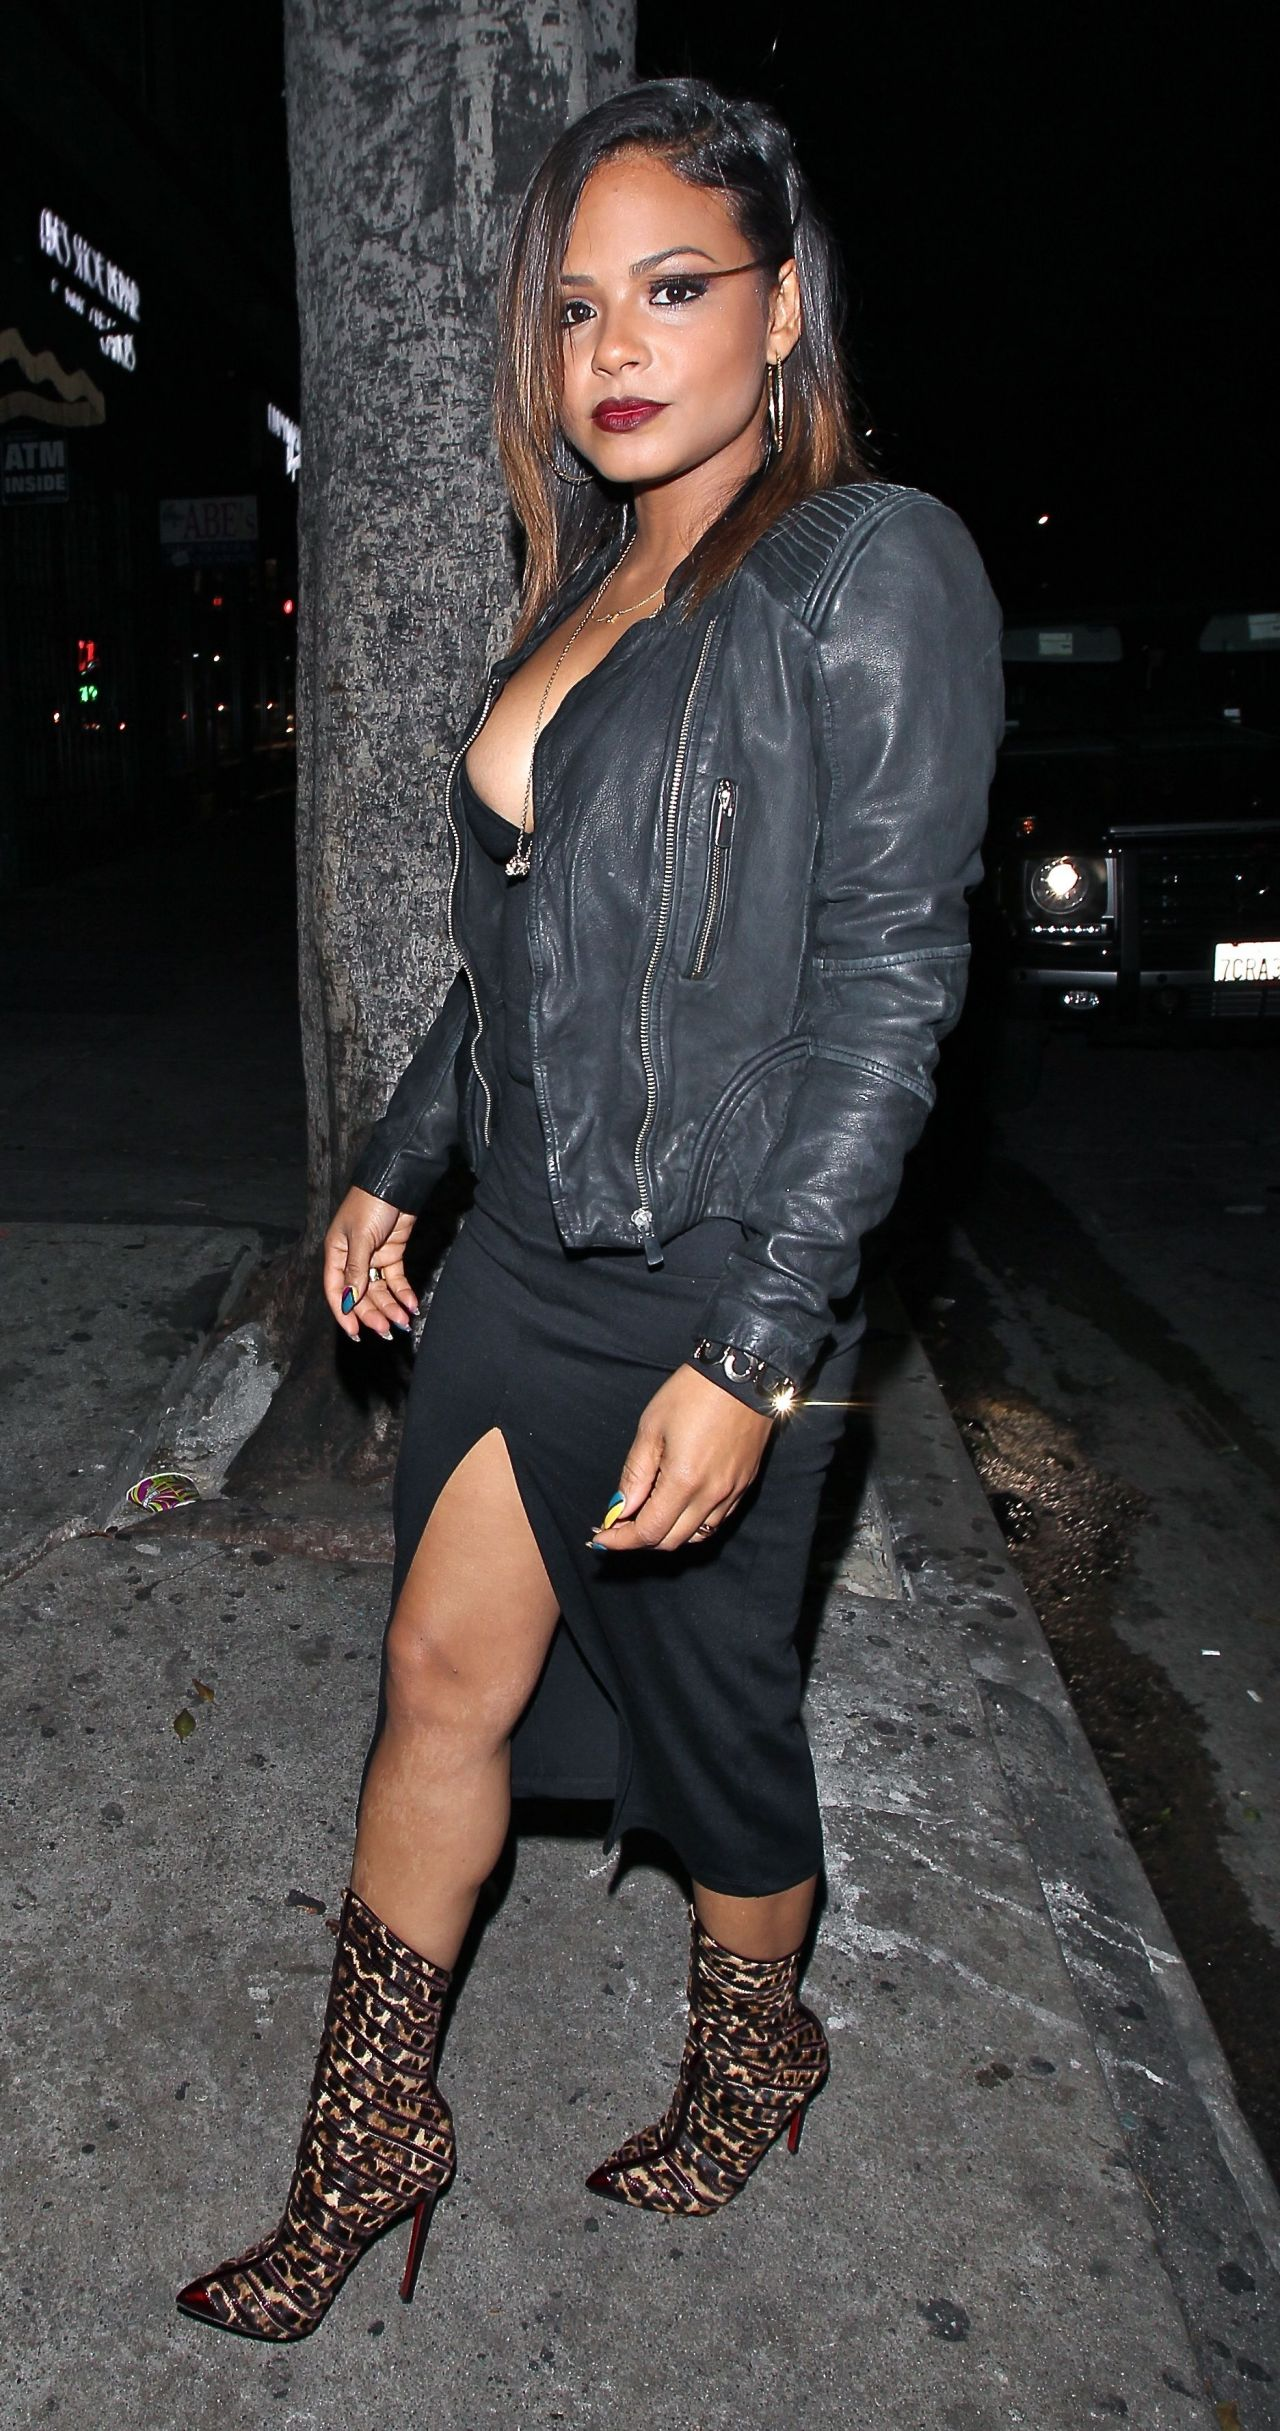 Christina Milian Night Out Style – Warwick Club in Los Angeles, Dec. 2014